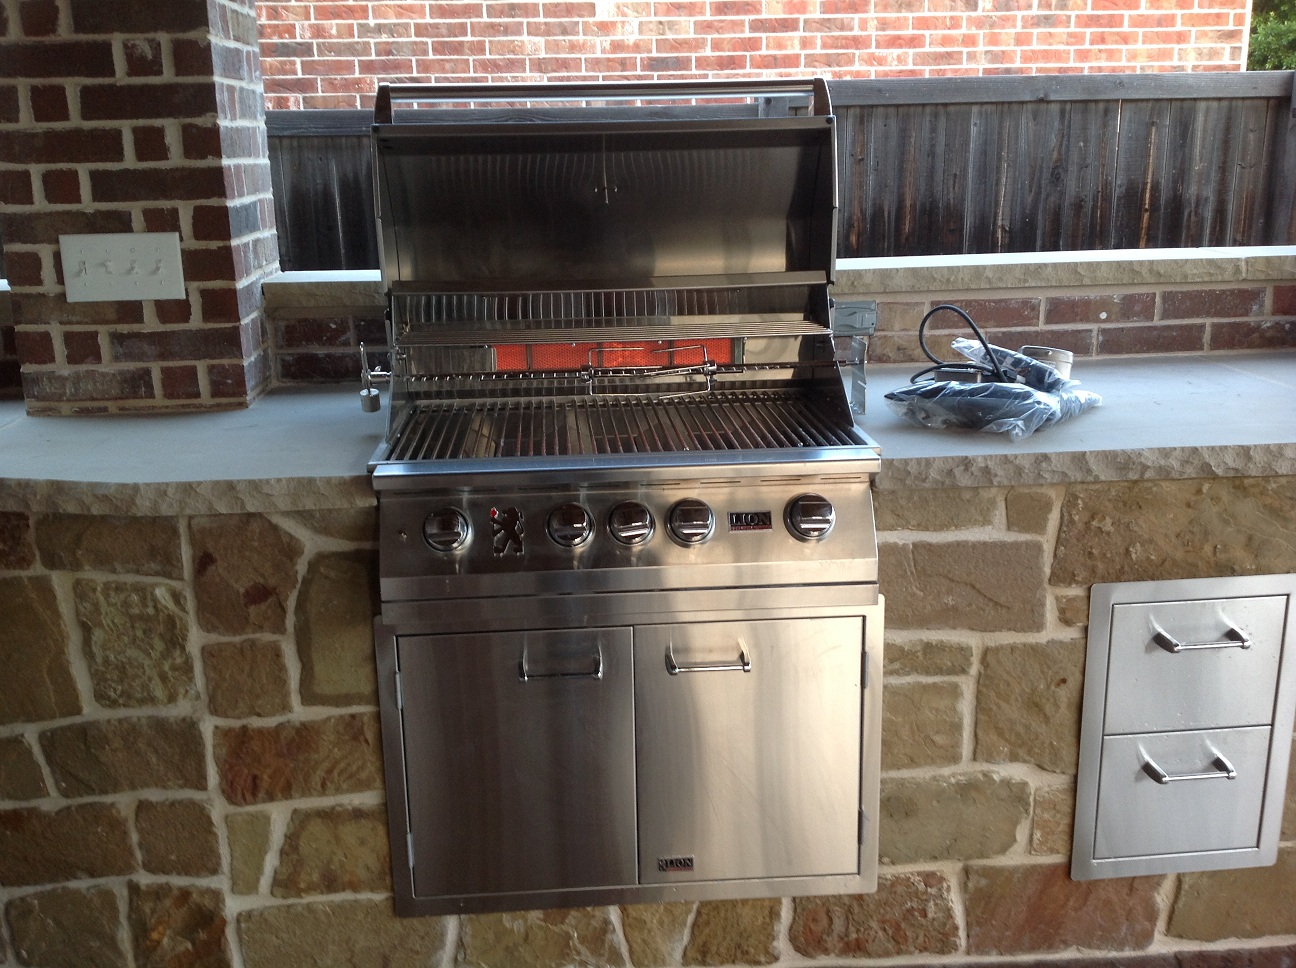 Lion Gas Grill | Outdoor Kitchen Equipment | Outdoor Kitchen & Outdoor Kitchens